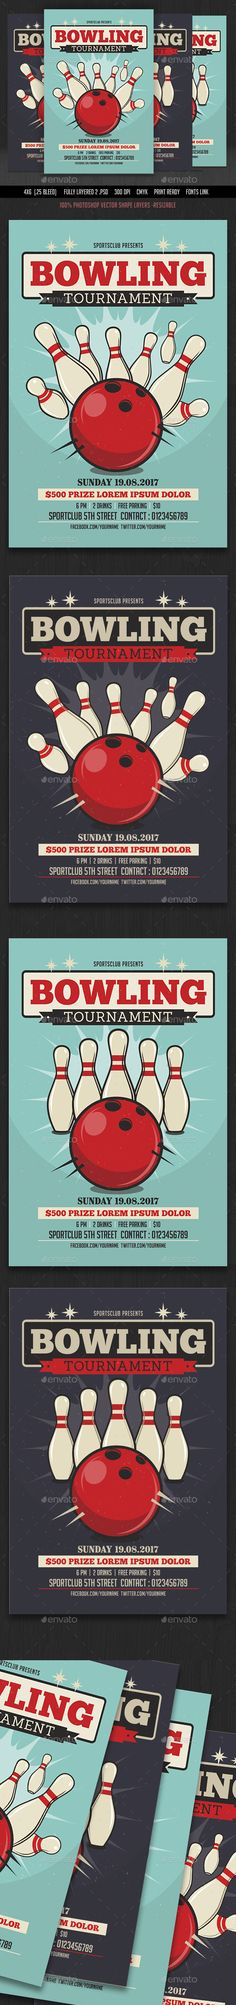 Bowling Tournament Flyer Template PSD. Download here: http://graphicriver.net/item/bowling-tournament-flyer/16338751?ref=ksioks